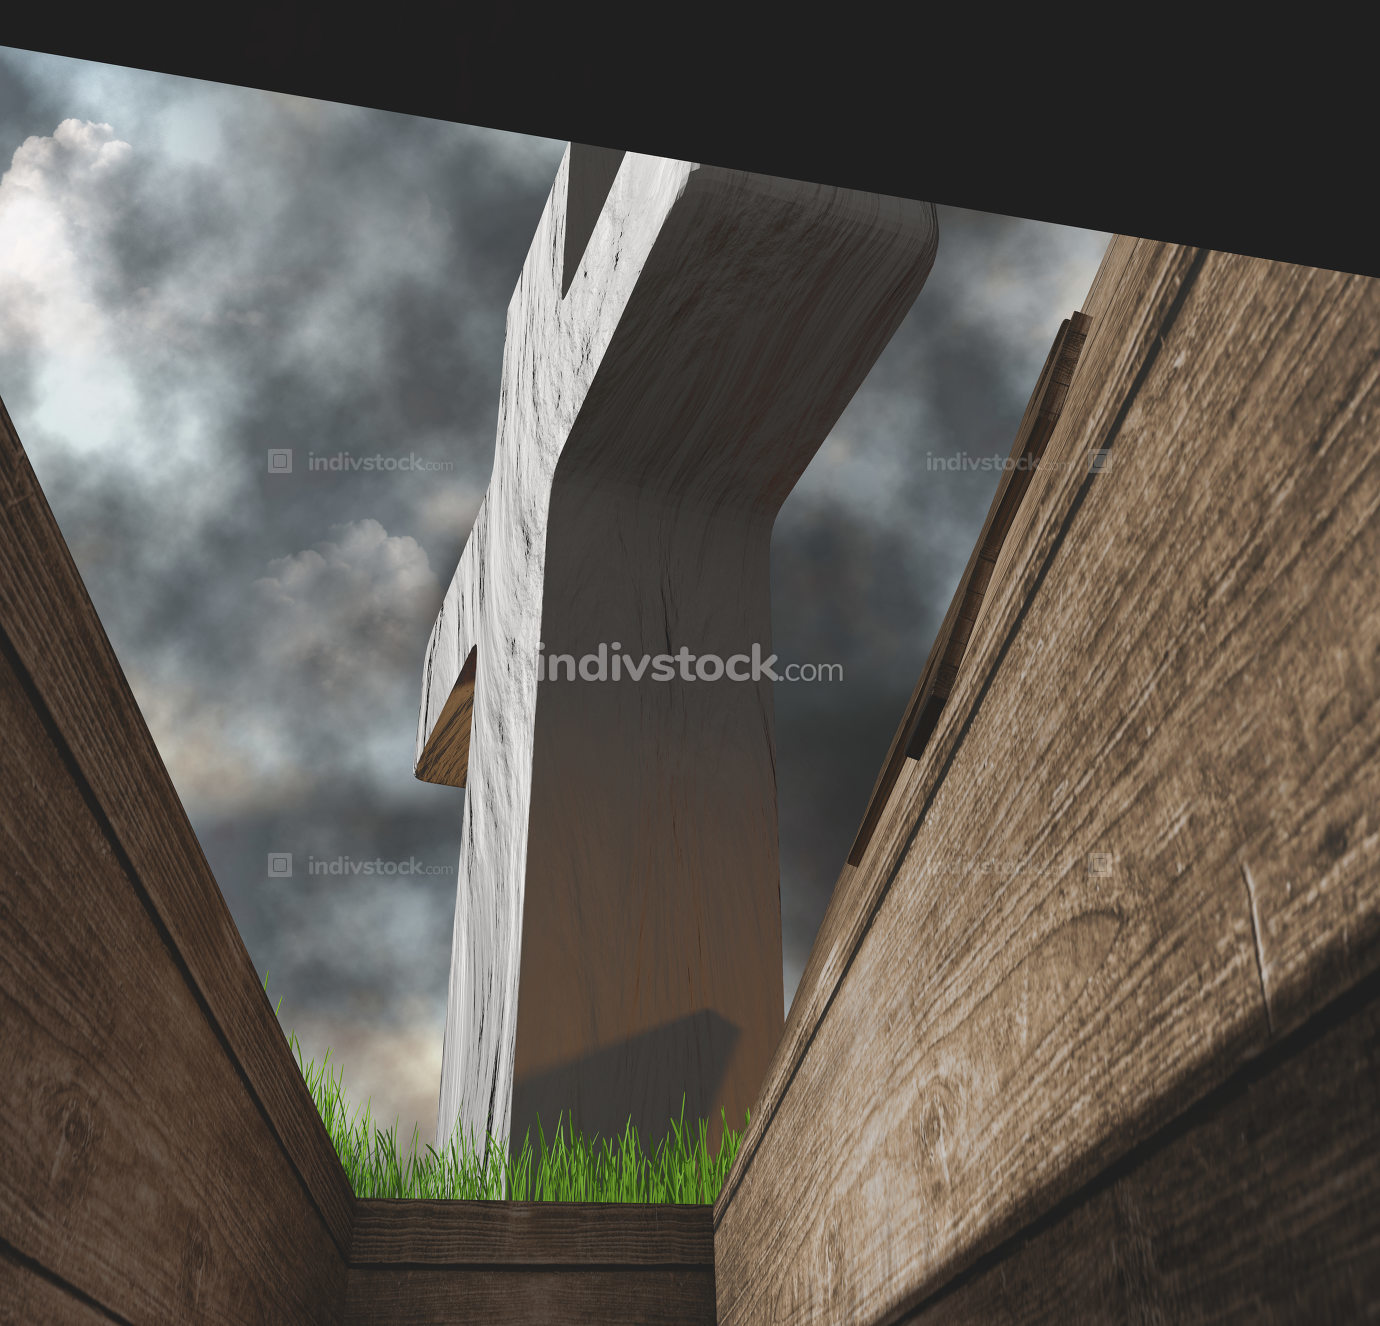 view from coffin in a grave on a graveyard 3d-illustration